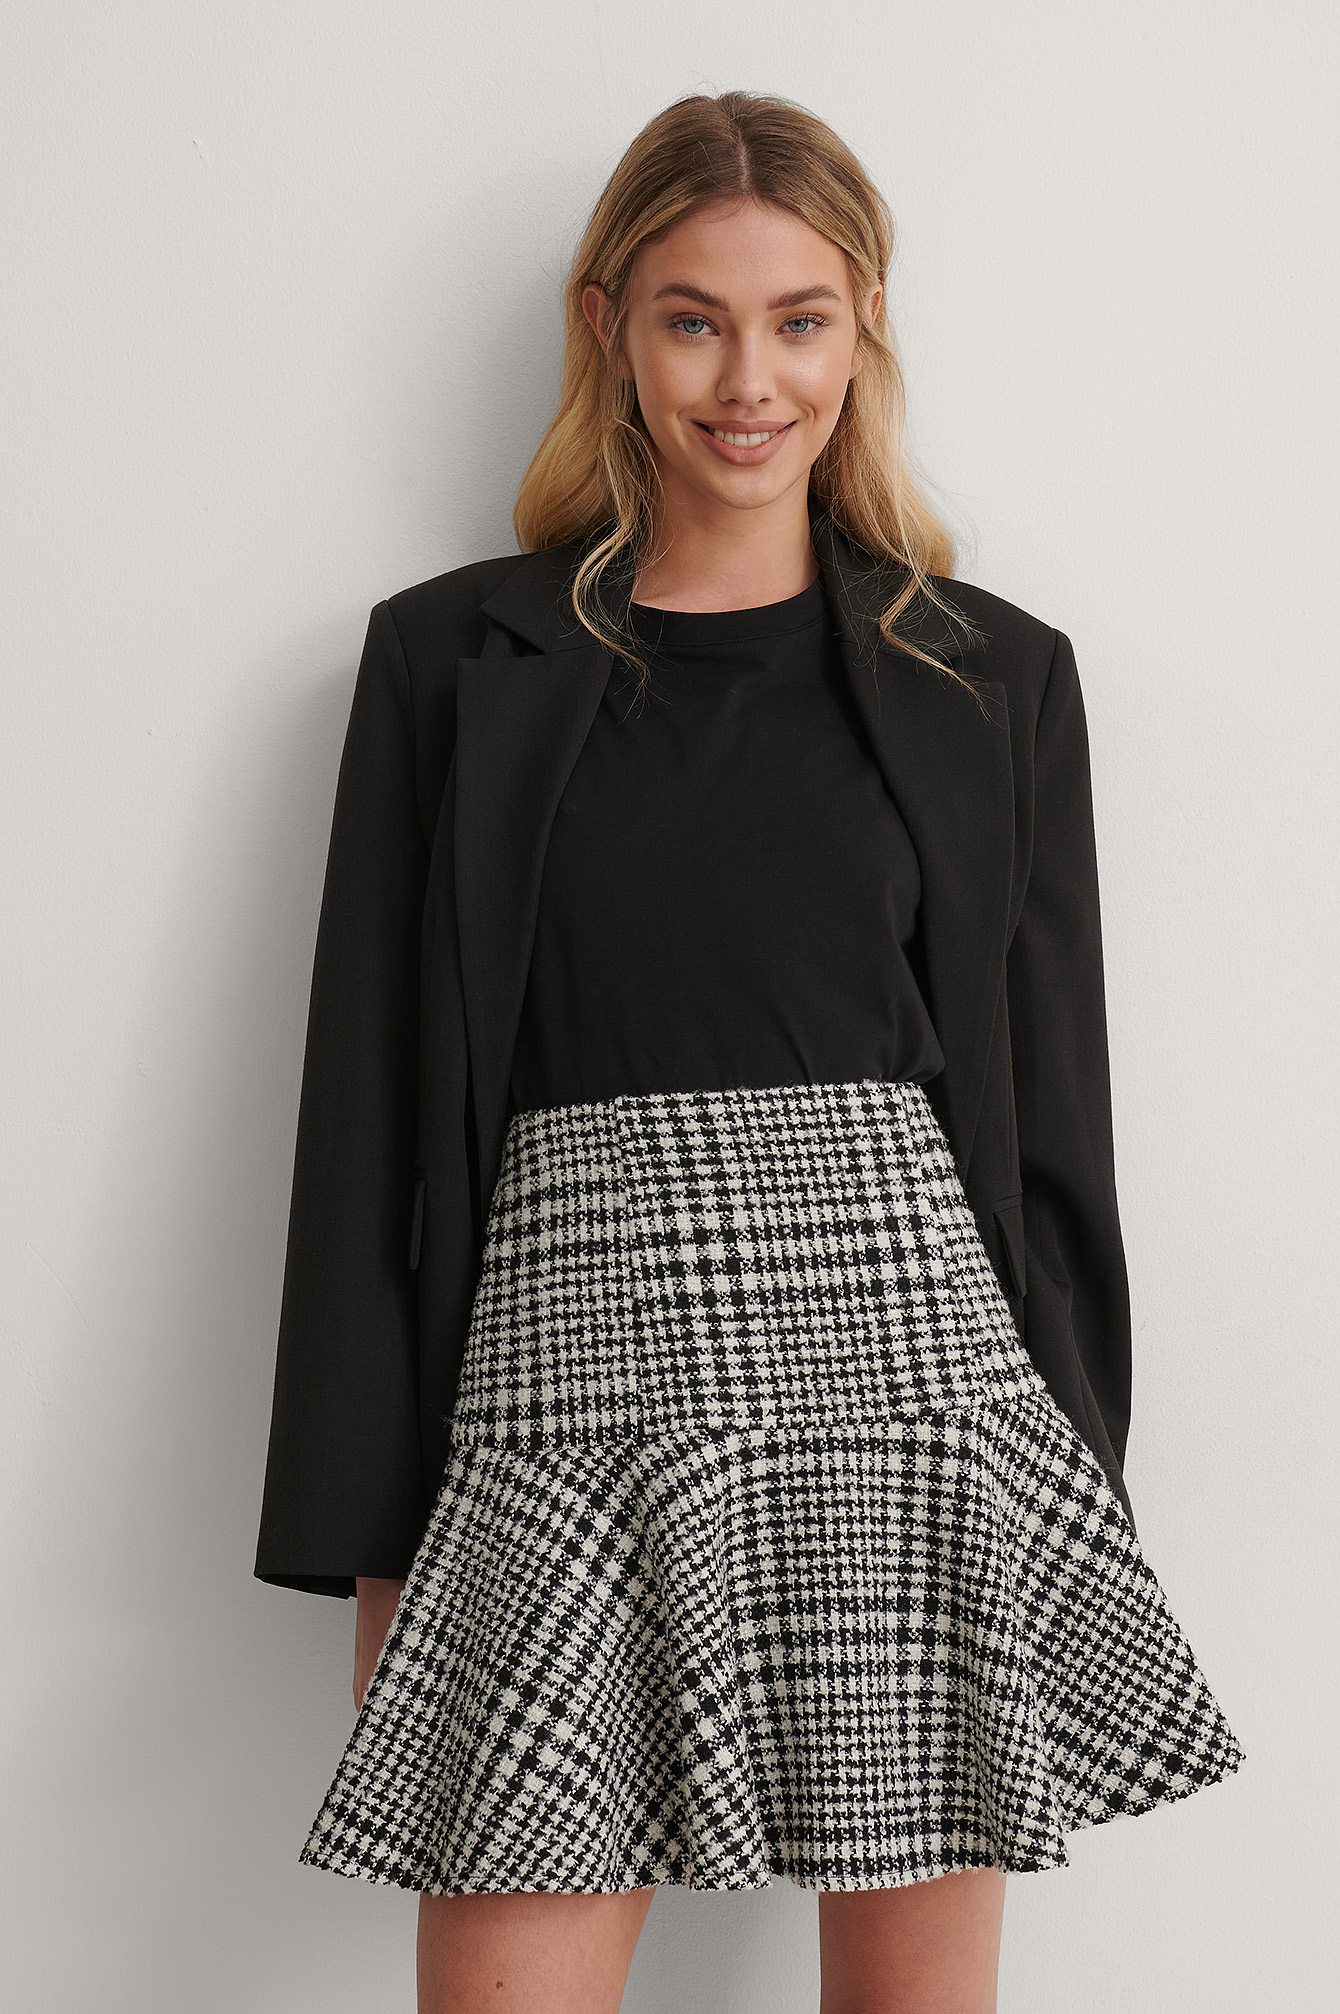 Black/White Dogtooth Tweed Skirt